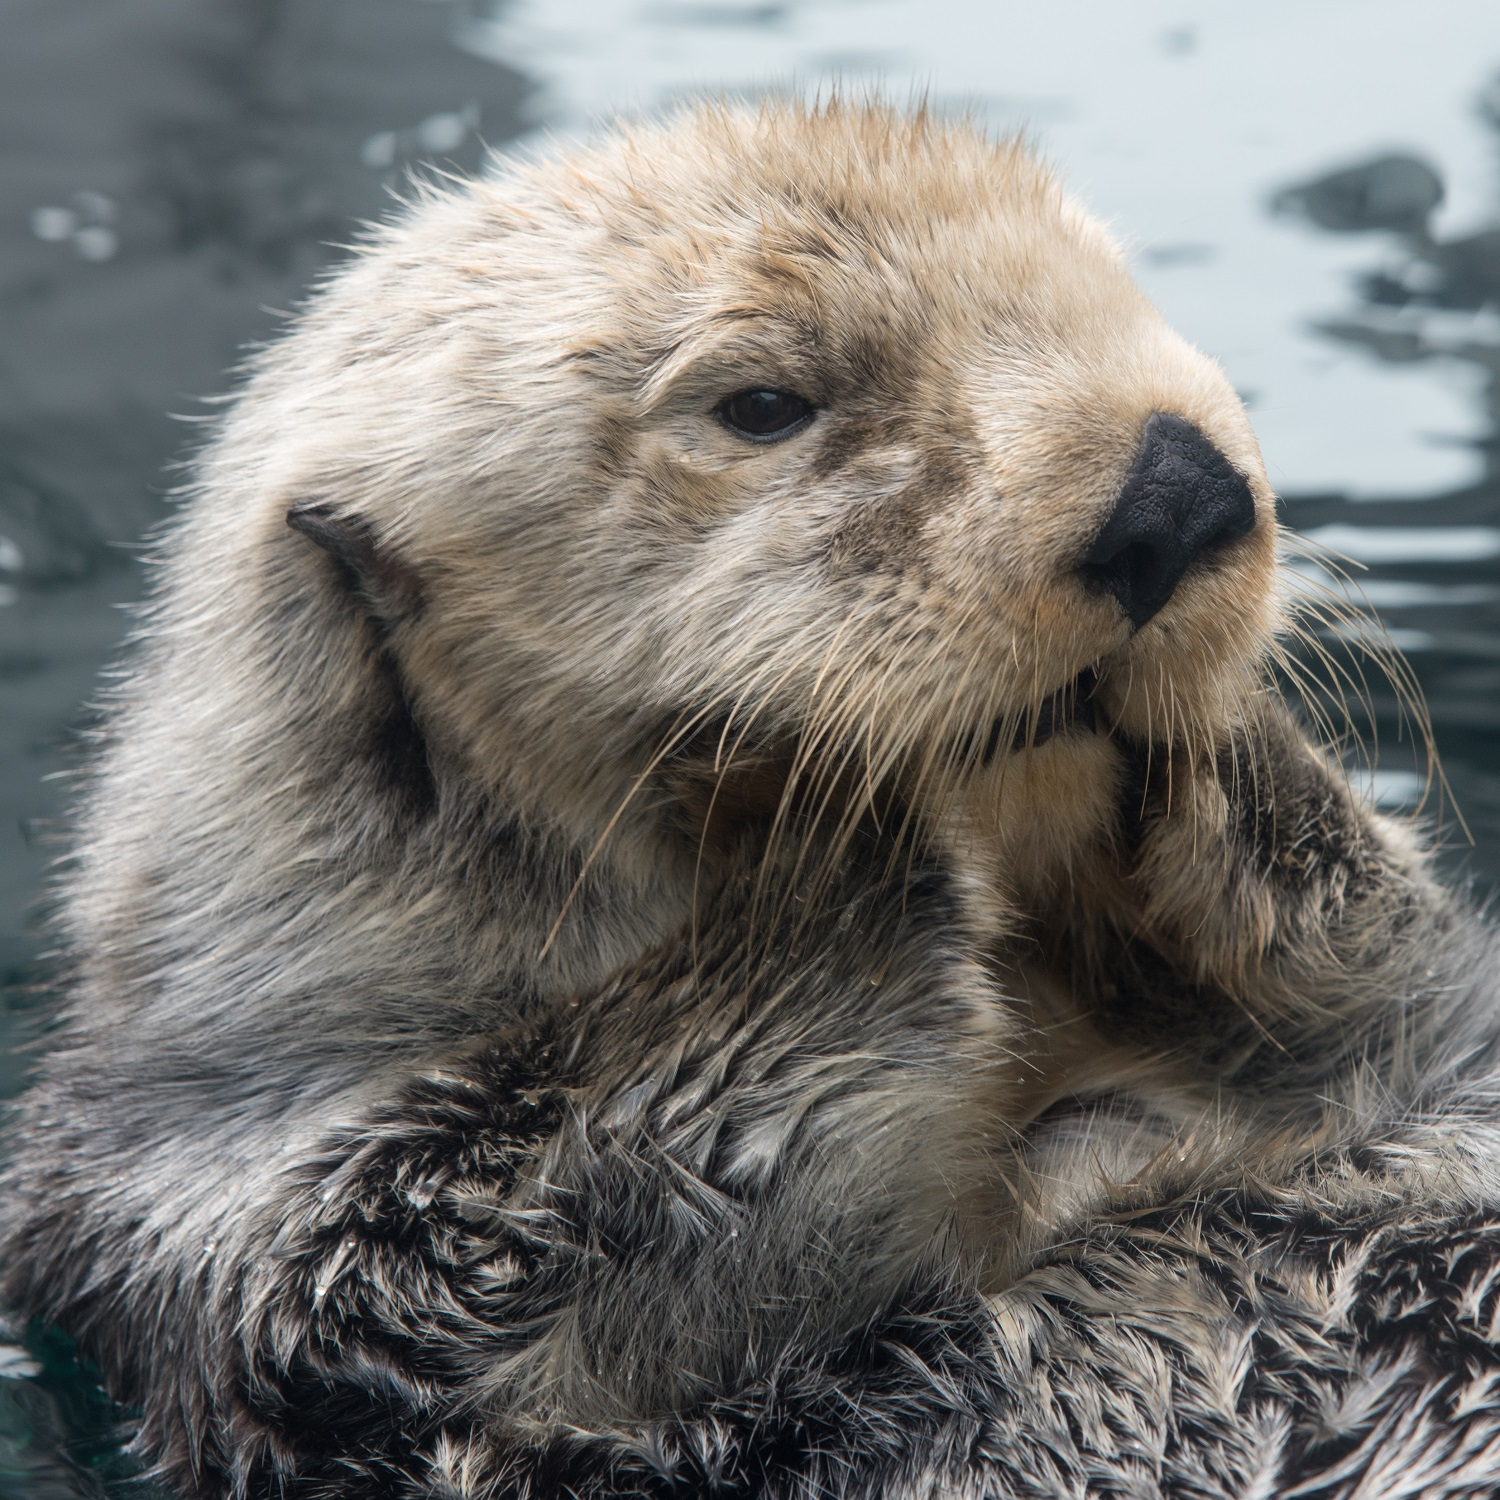 Lootas the sea otter